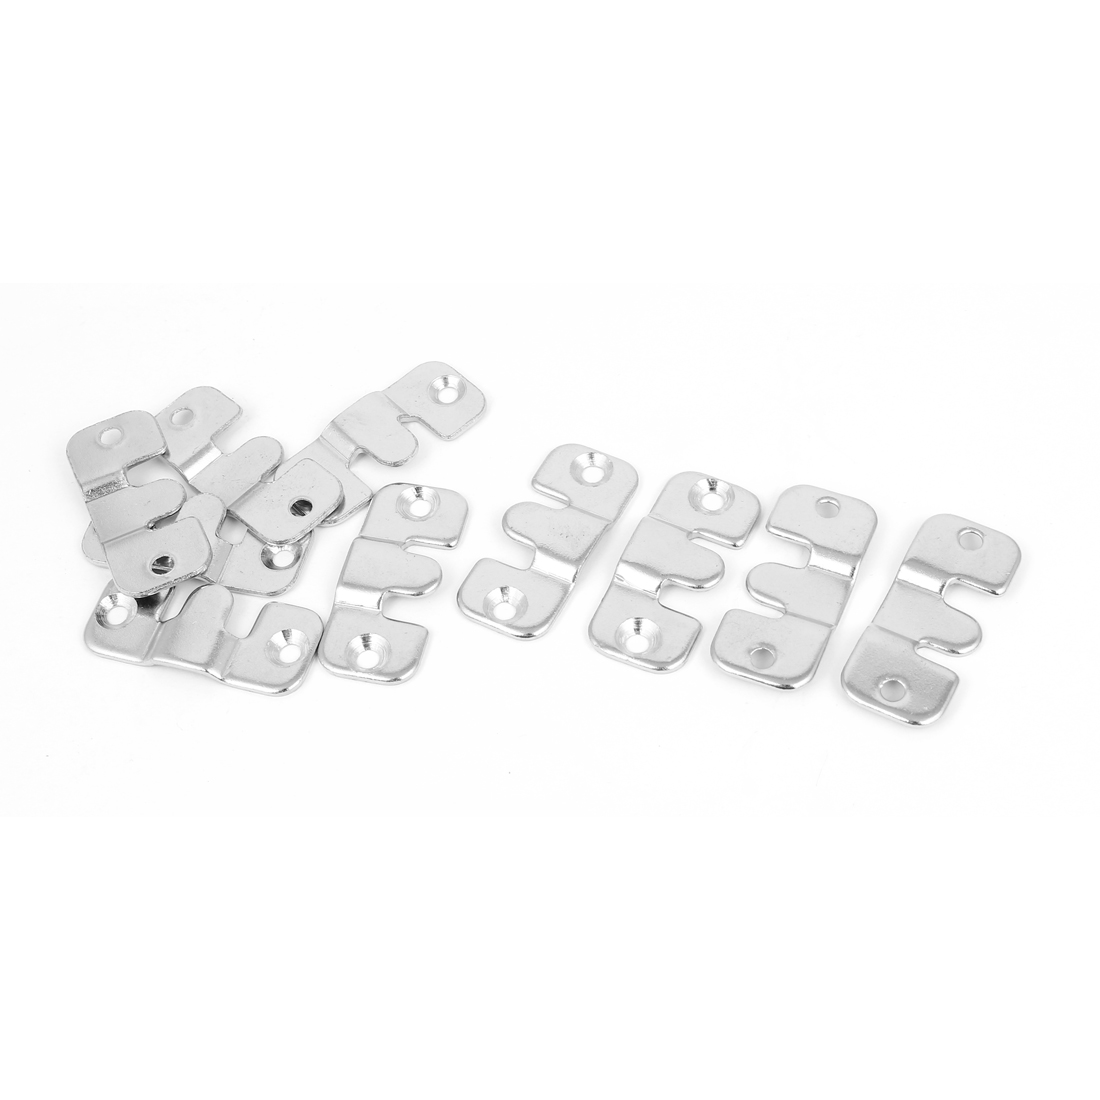 Furniture Sofa Photo Frame Metal Interlock Bracket Connector Hook 10pcs